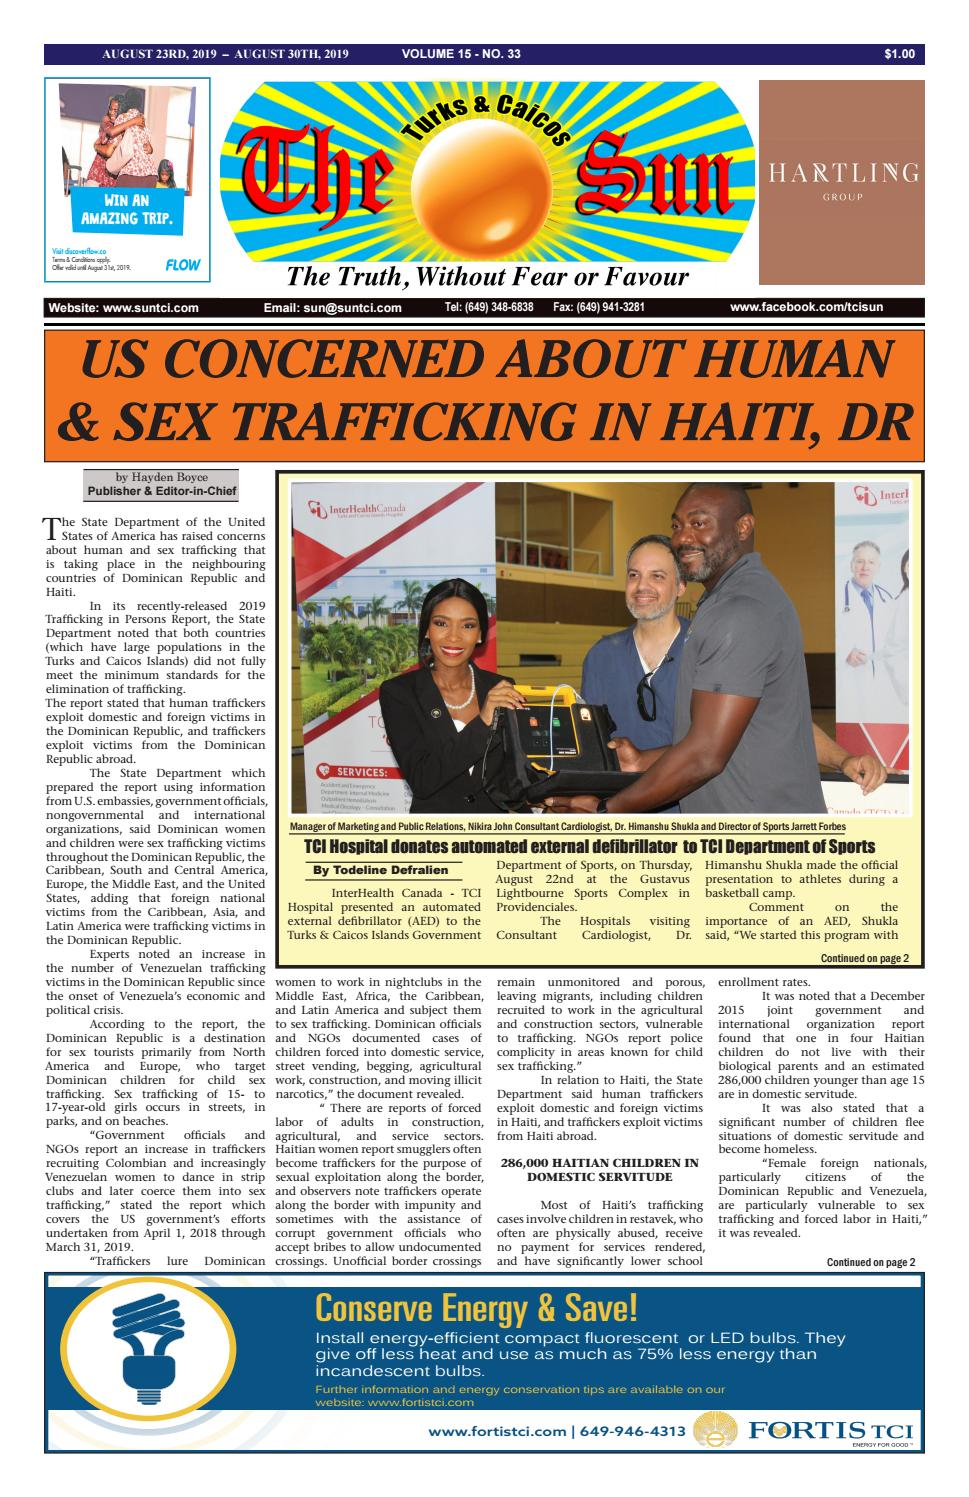 VOLUME 15 ISSUE 33 by The SUN Newspaper - issuu